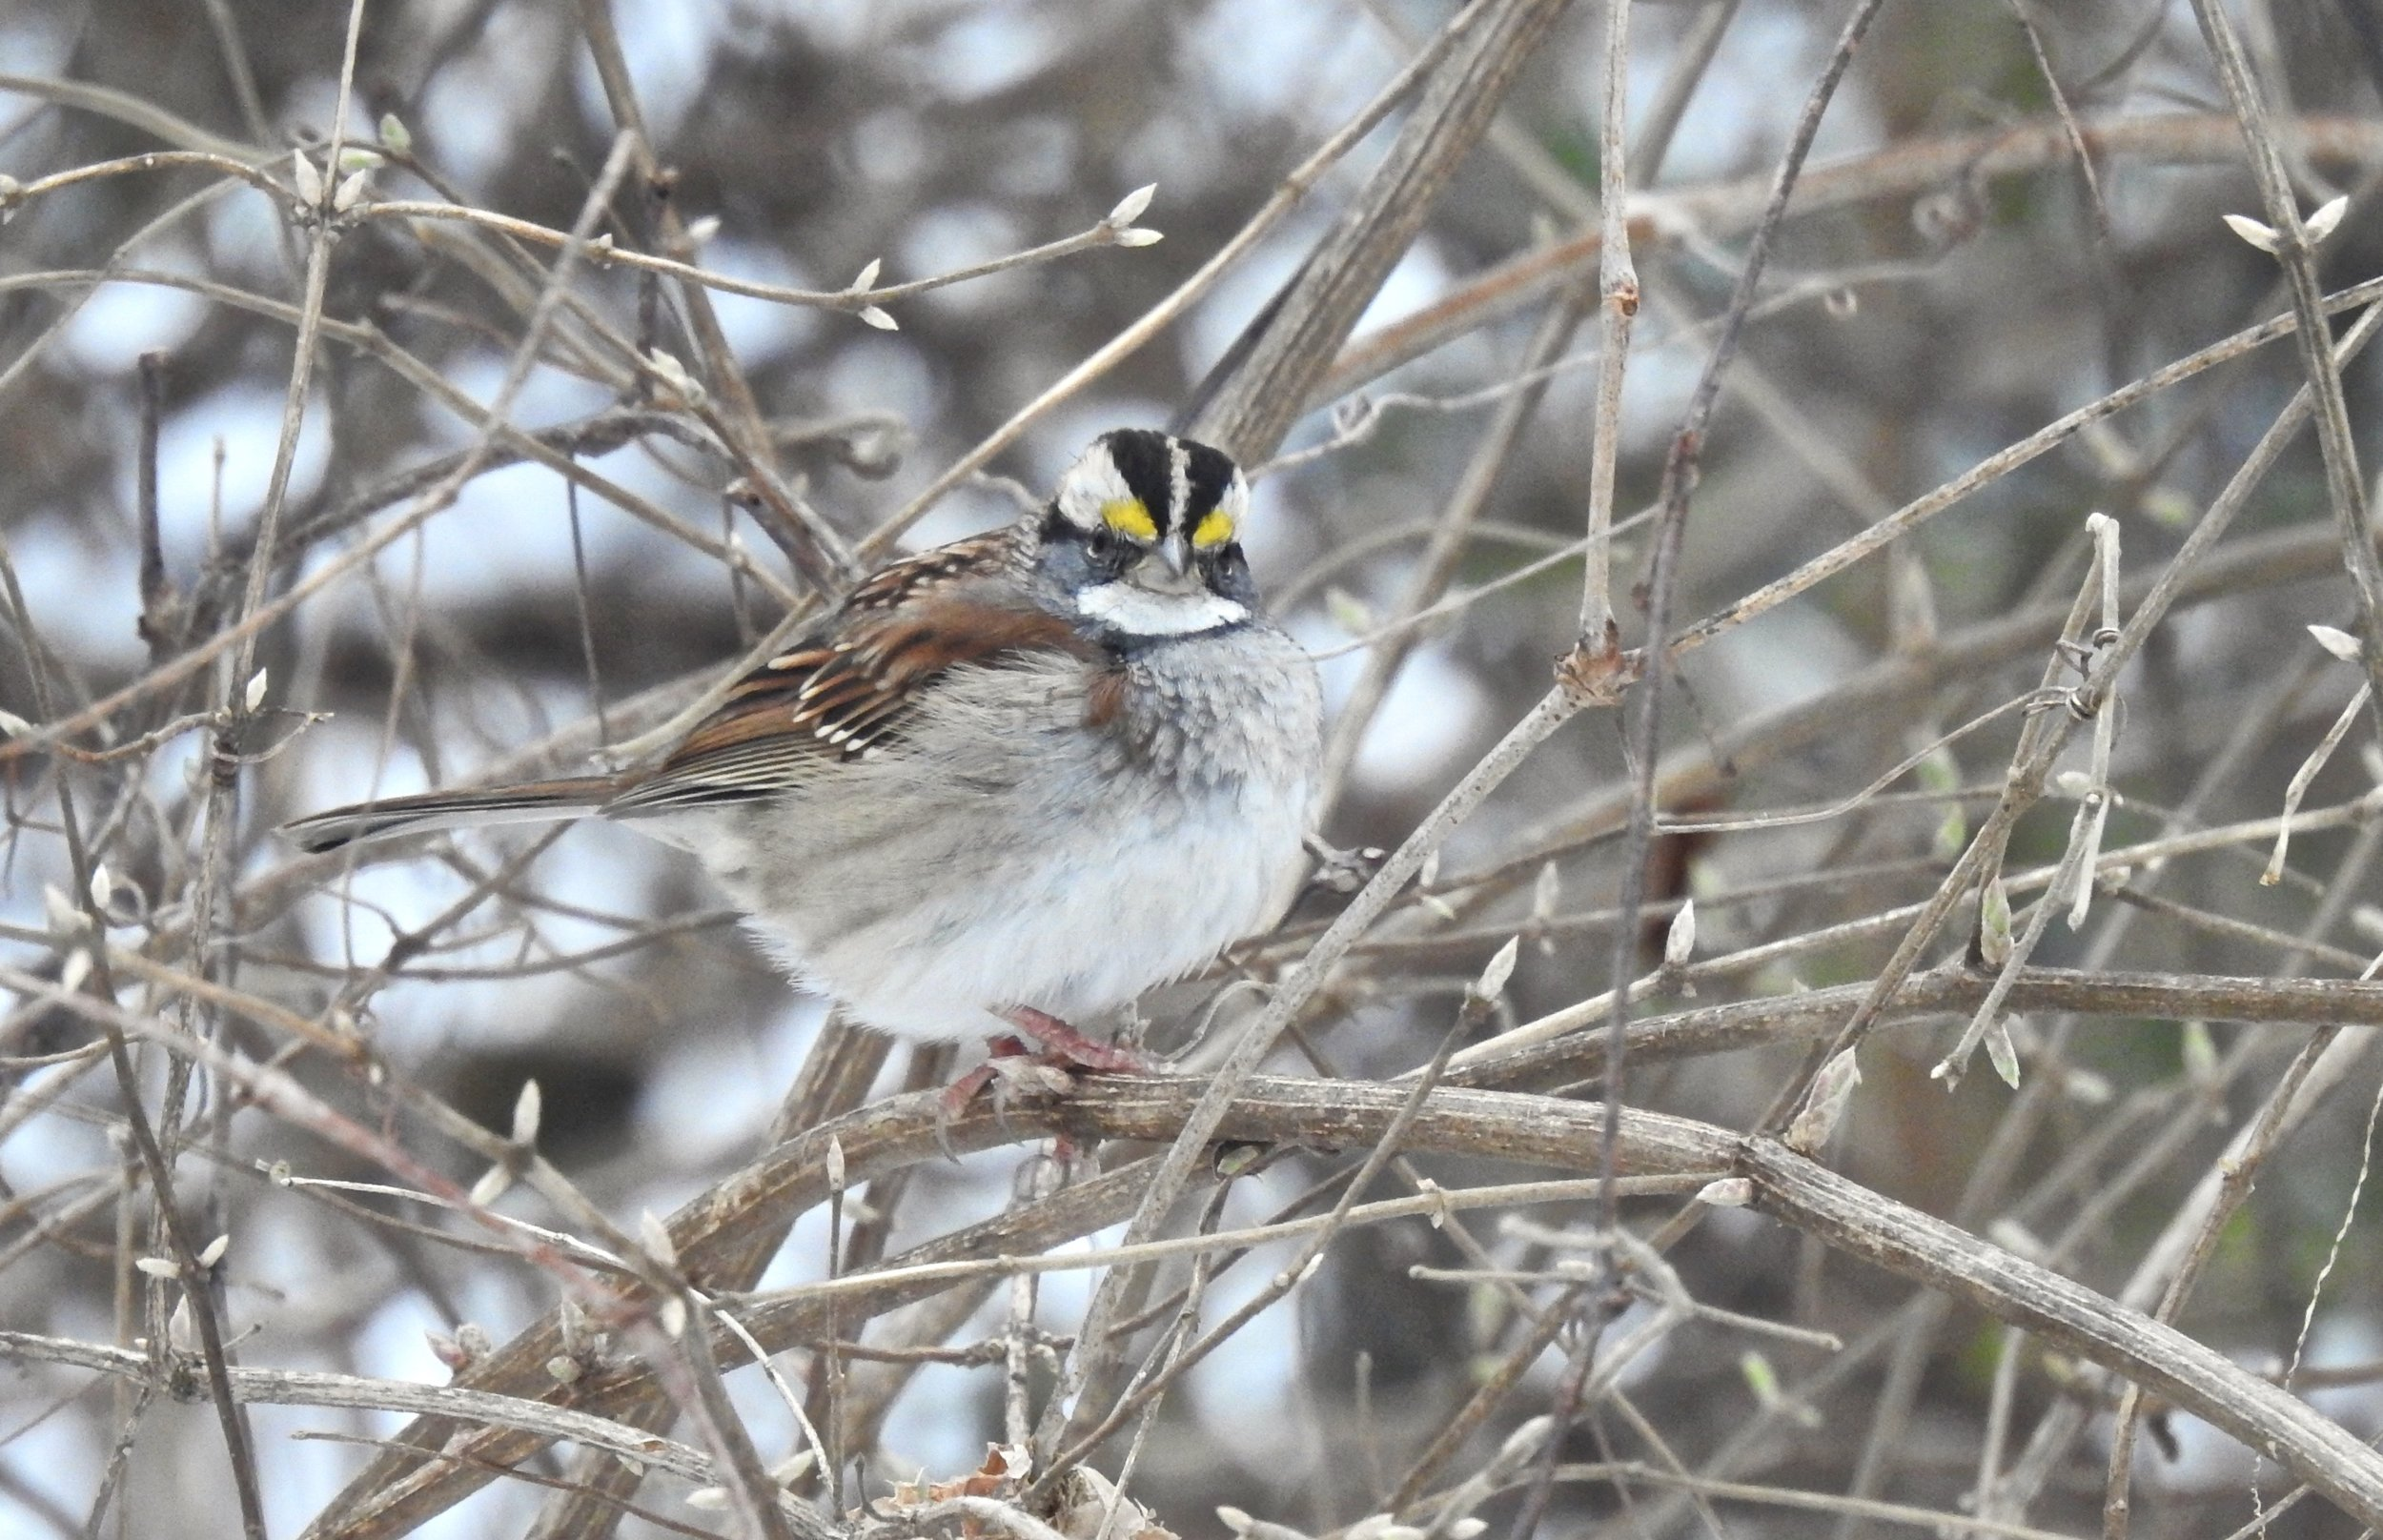 White-throated Sparrow. Photo taken at The Woodlands by Toribird.